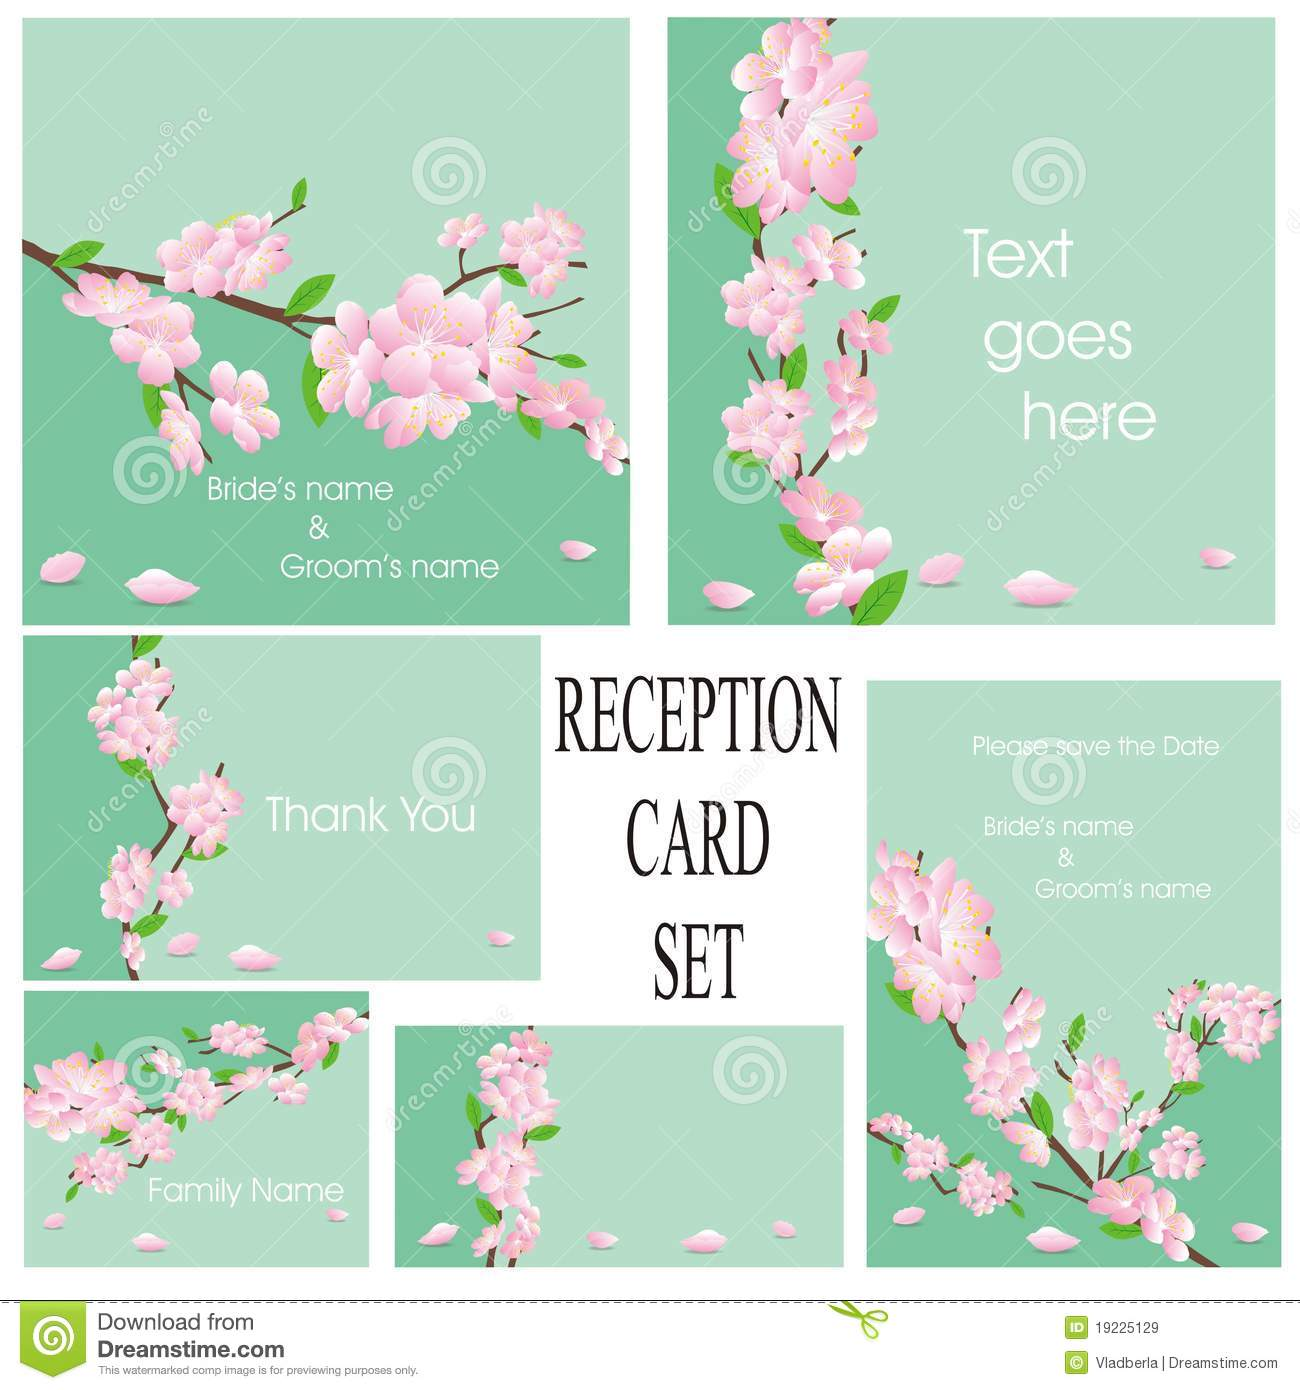 Wedding Or Reception Card Set In Green Royalty Free Stock Images